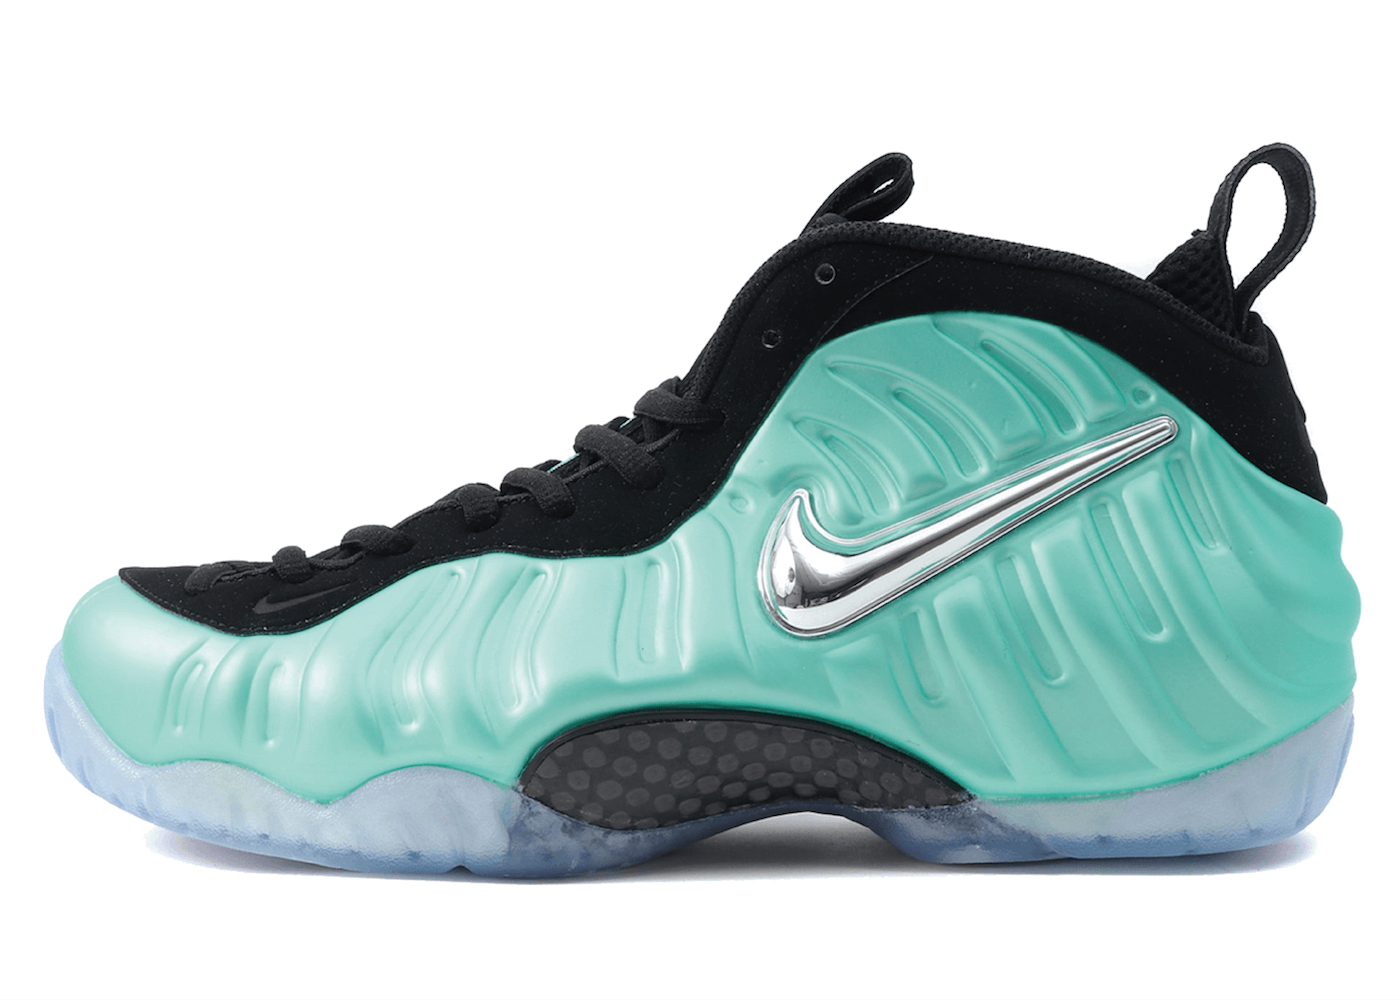 Nike Air Foamposite Pro Island Greenの写真